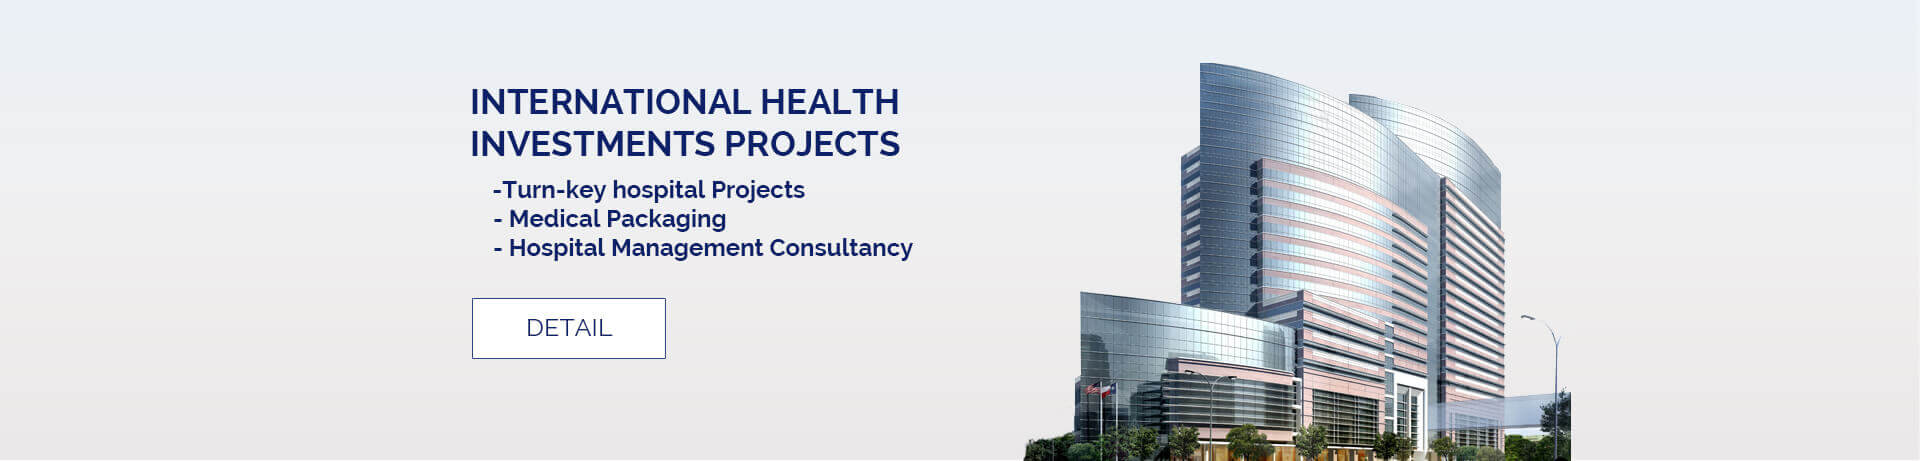 International Health Investment Projects